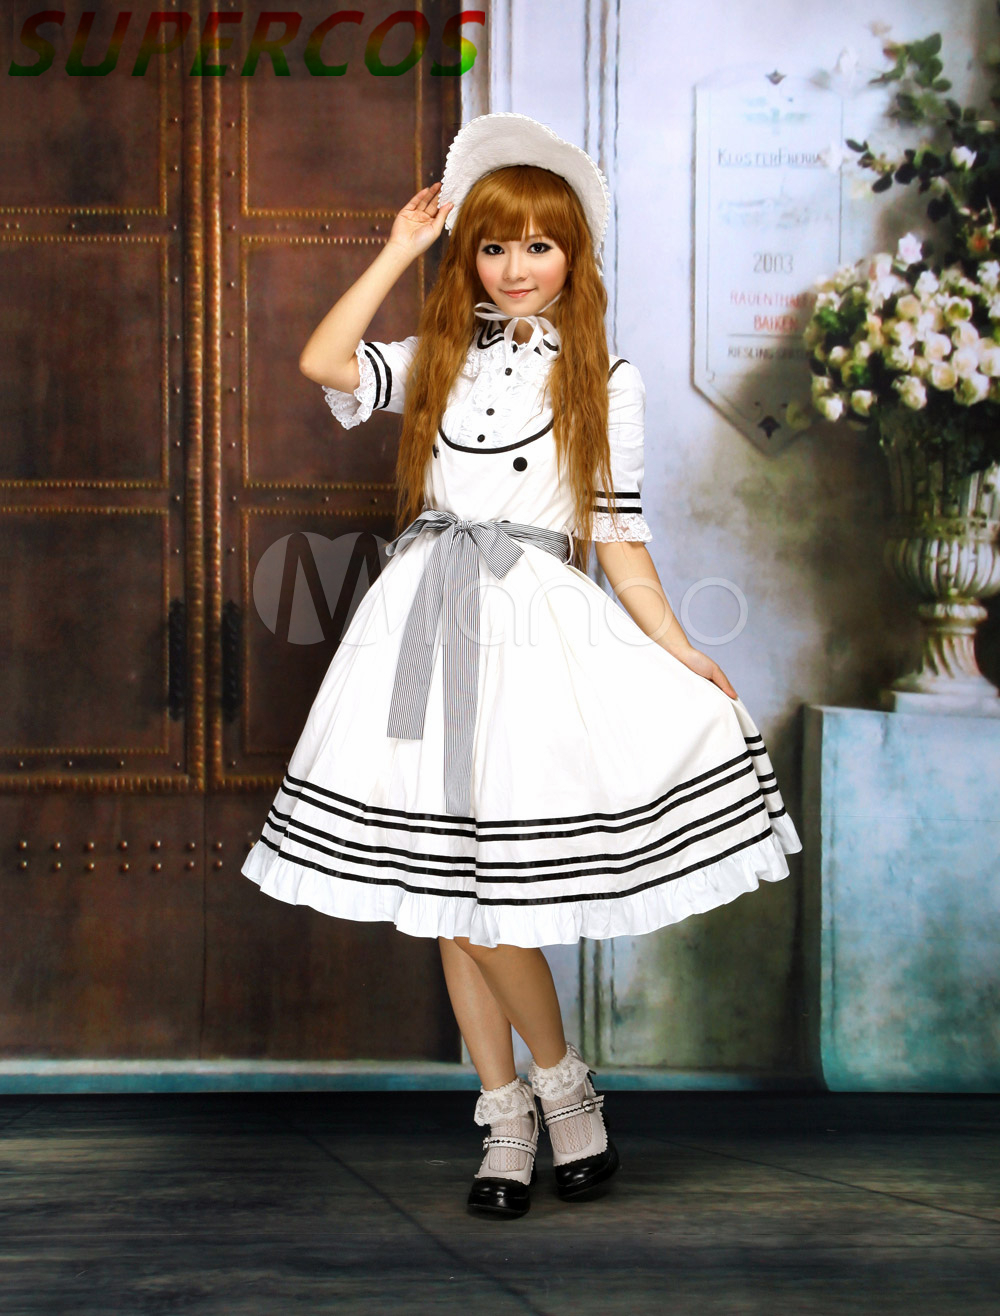 Free shipping! New Arrivals! High quality ! Beige White Cotton Sweet Lolita DressОдежда и ак�е��уары<br><br><br>Aliexpress